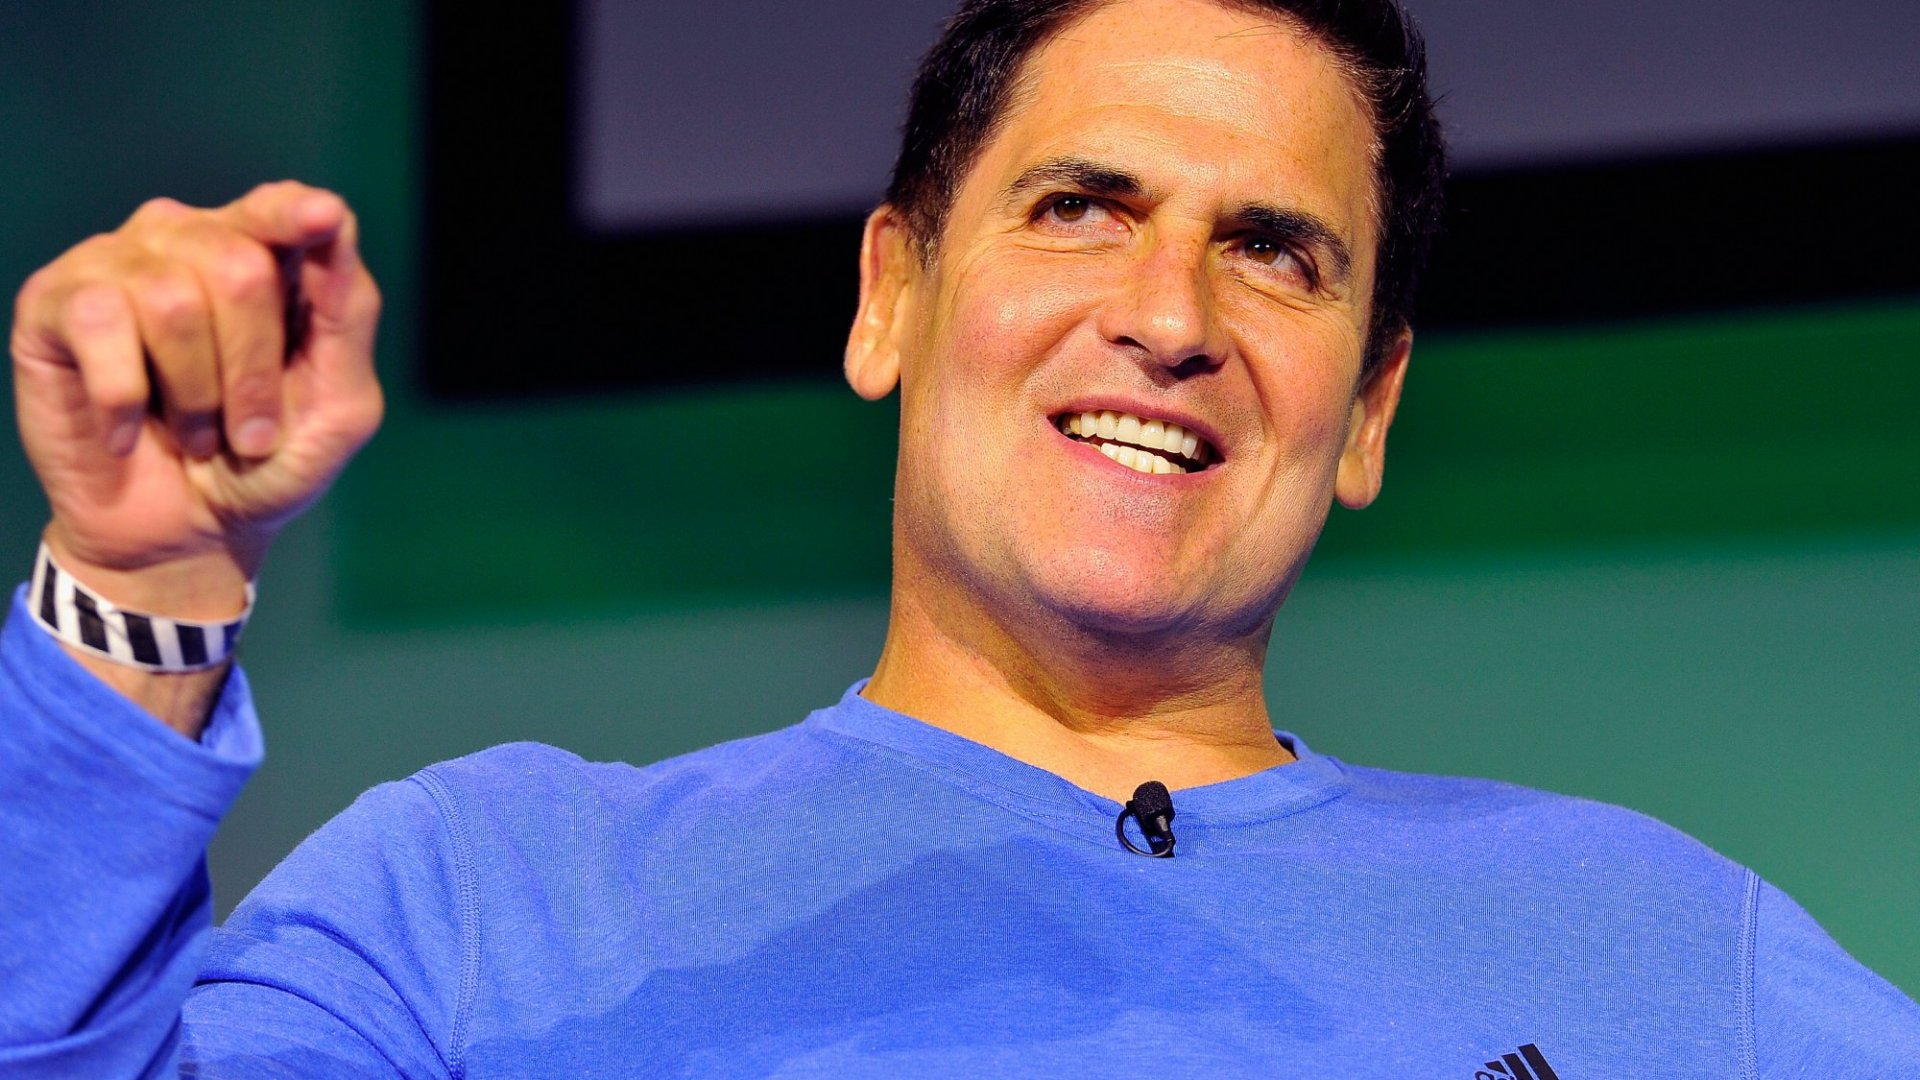 Mark Cuban's 5 Best Quotes on Overcoming Failure